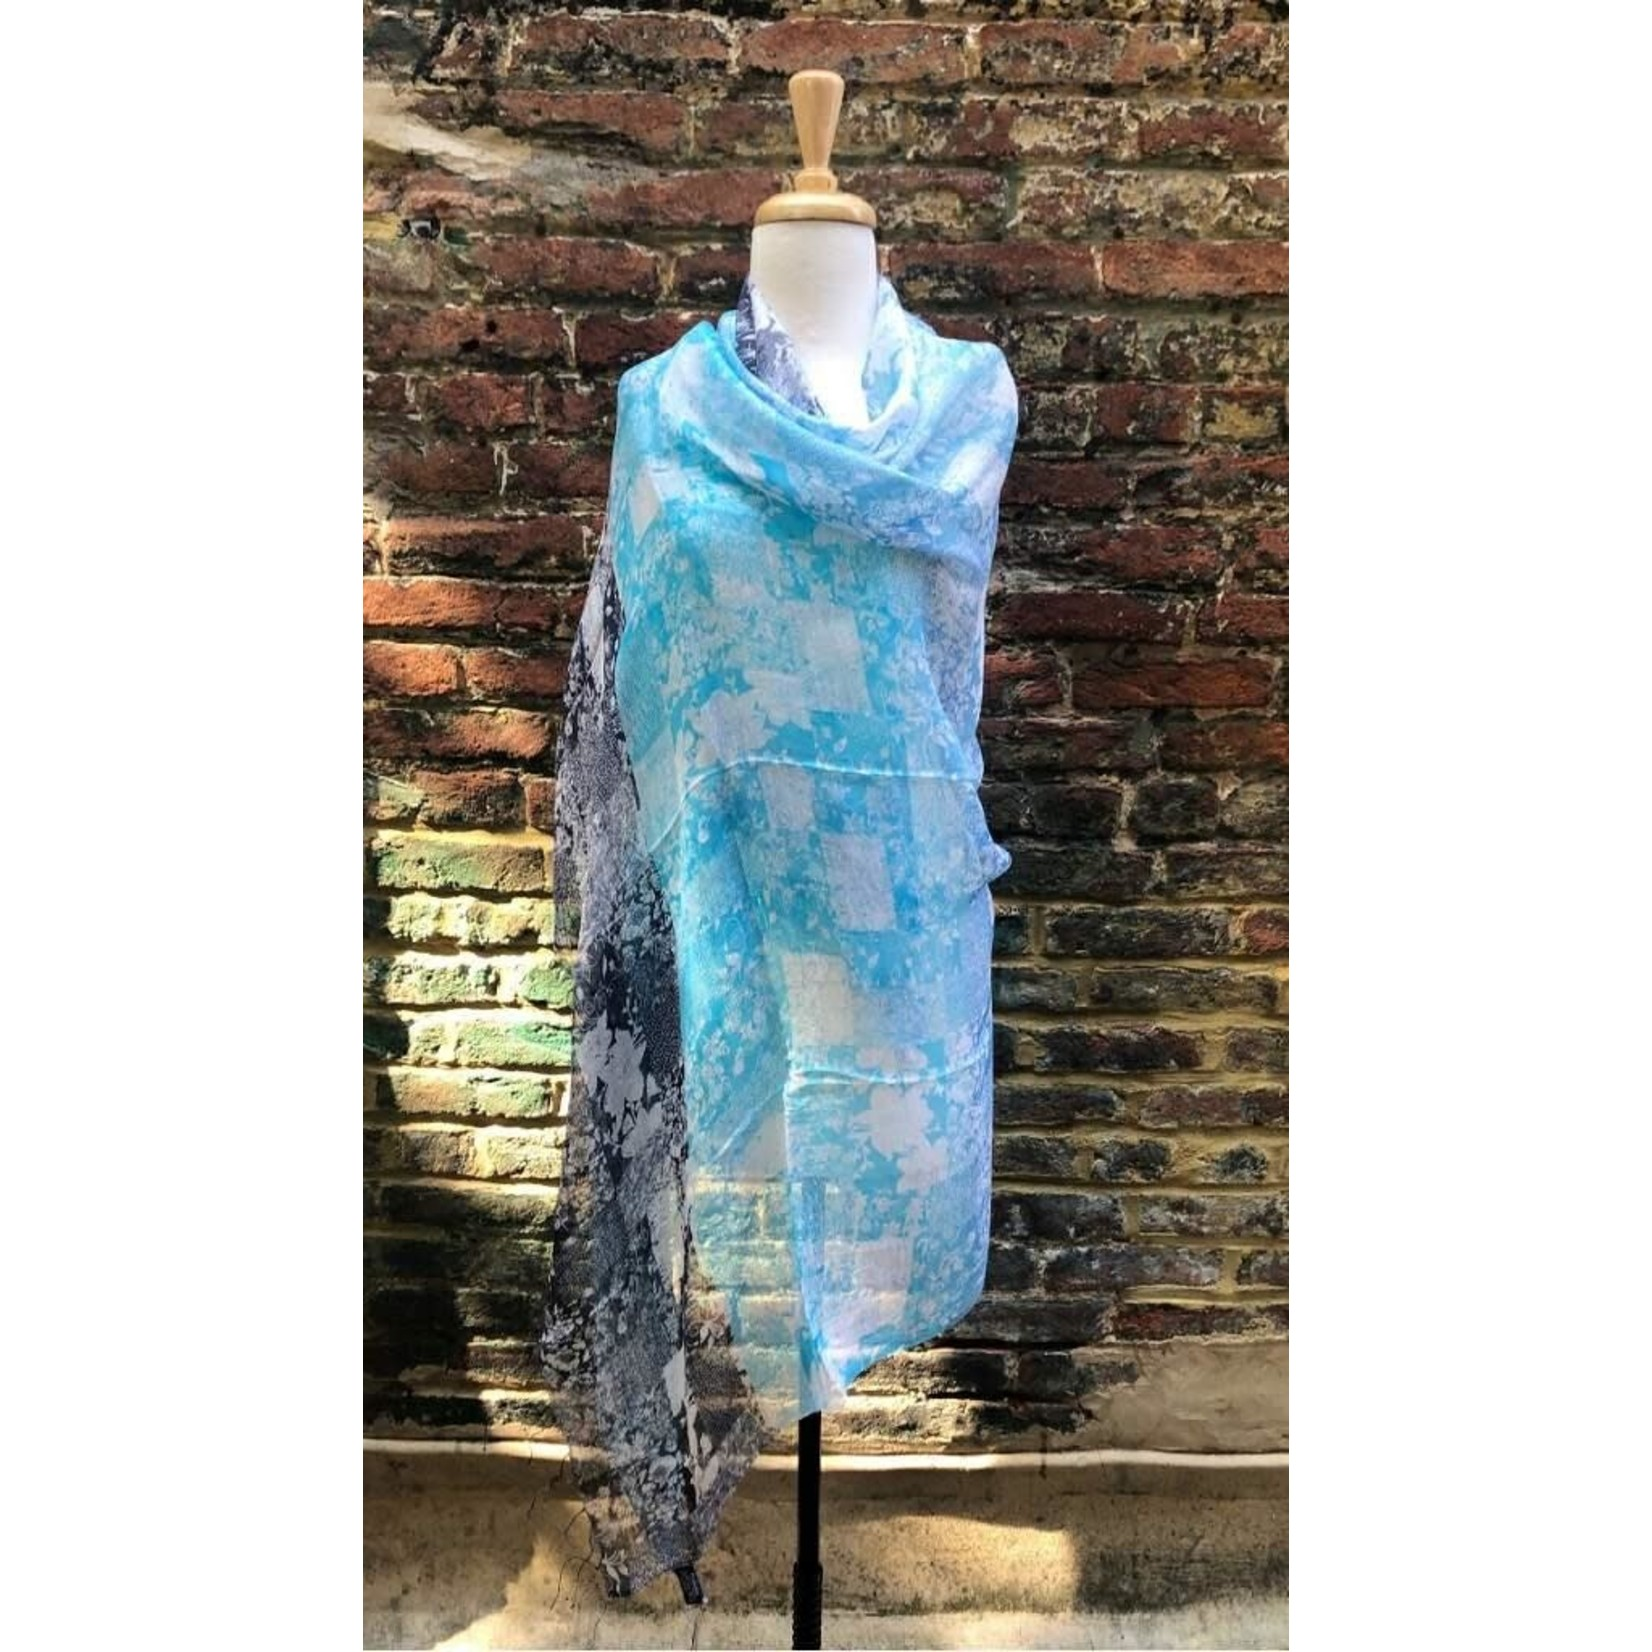 100% Silk Turq and DkGrayScarf w/ White Floral Faded  Print